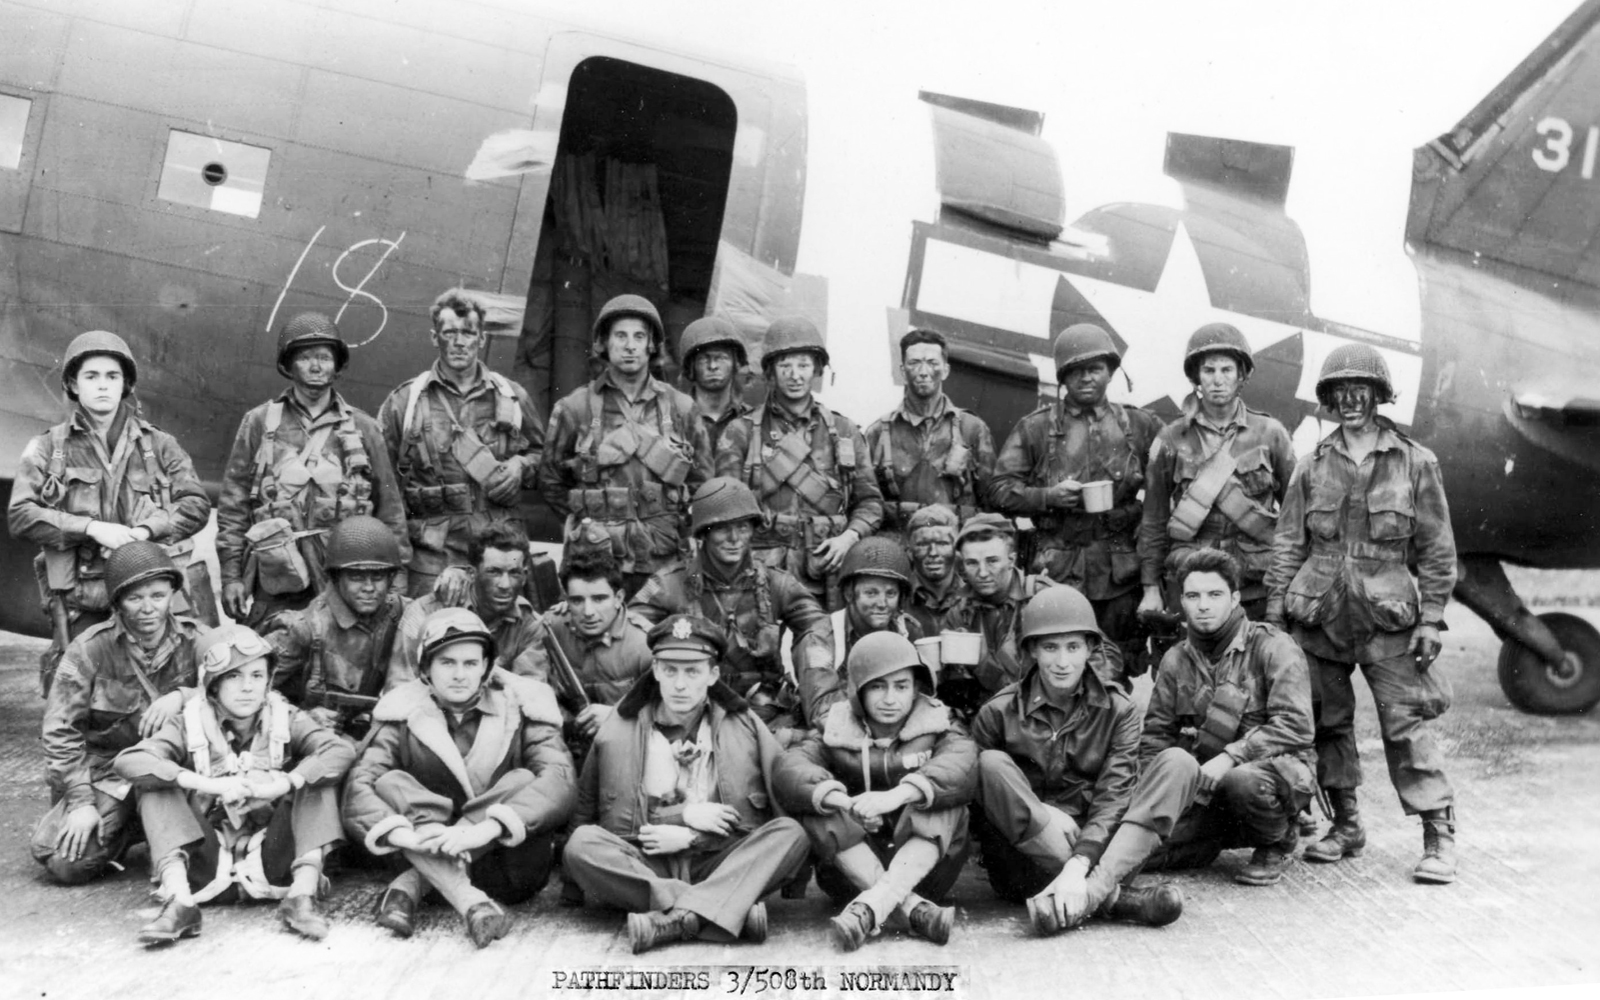 Day reenactment ww ii pictures pinterest - Day Reenactment Ww Ii Pictures Pinterest 36